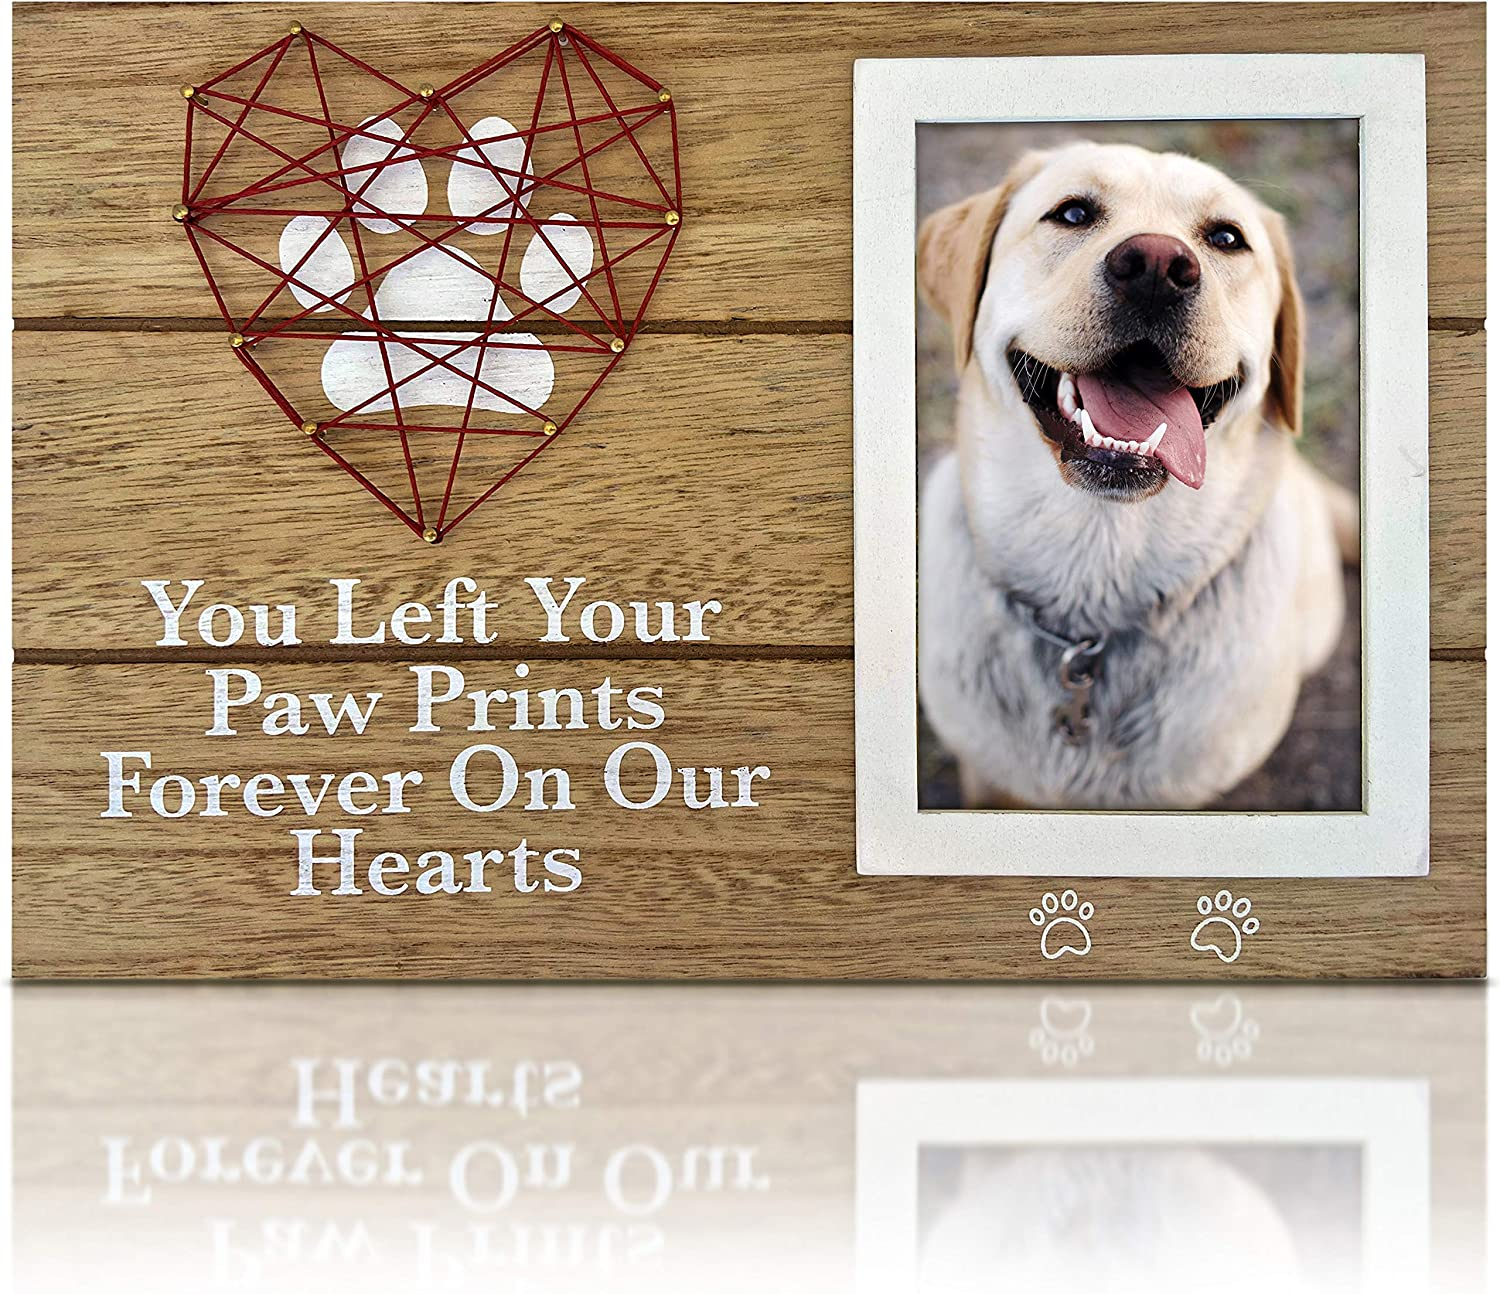 OakiWay Popular products Pet Memorial Gifts - 4x6 Paw with Max 46% OFF Picture Frame Prin Dog